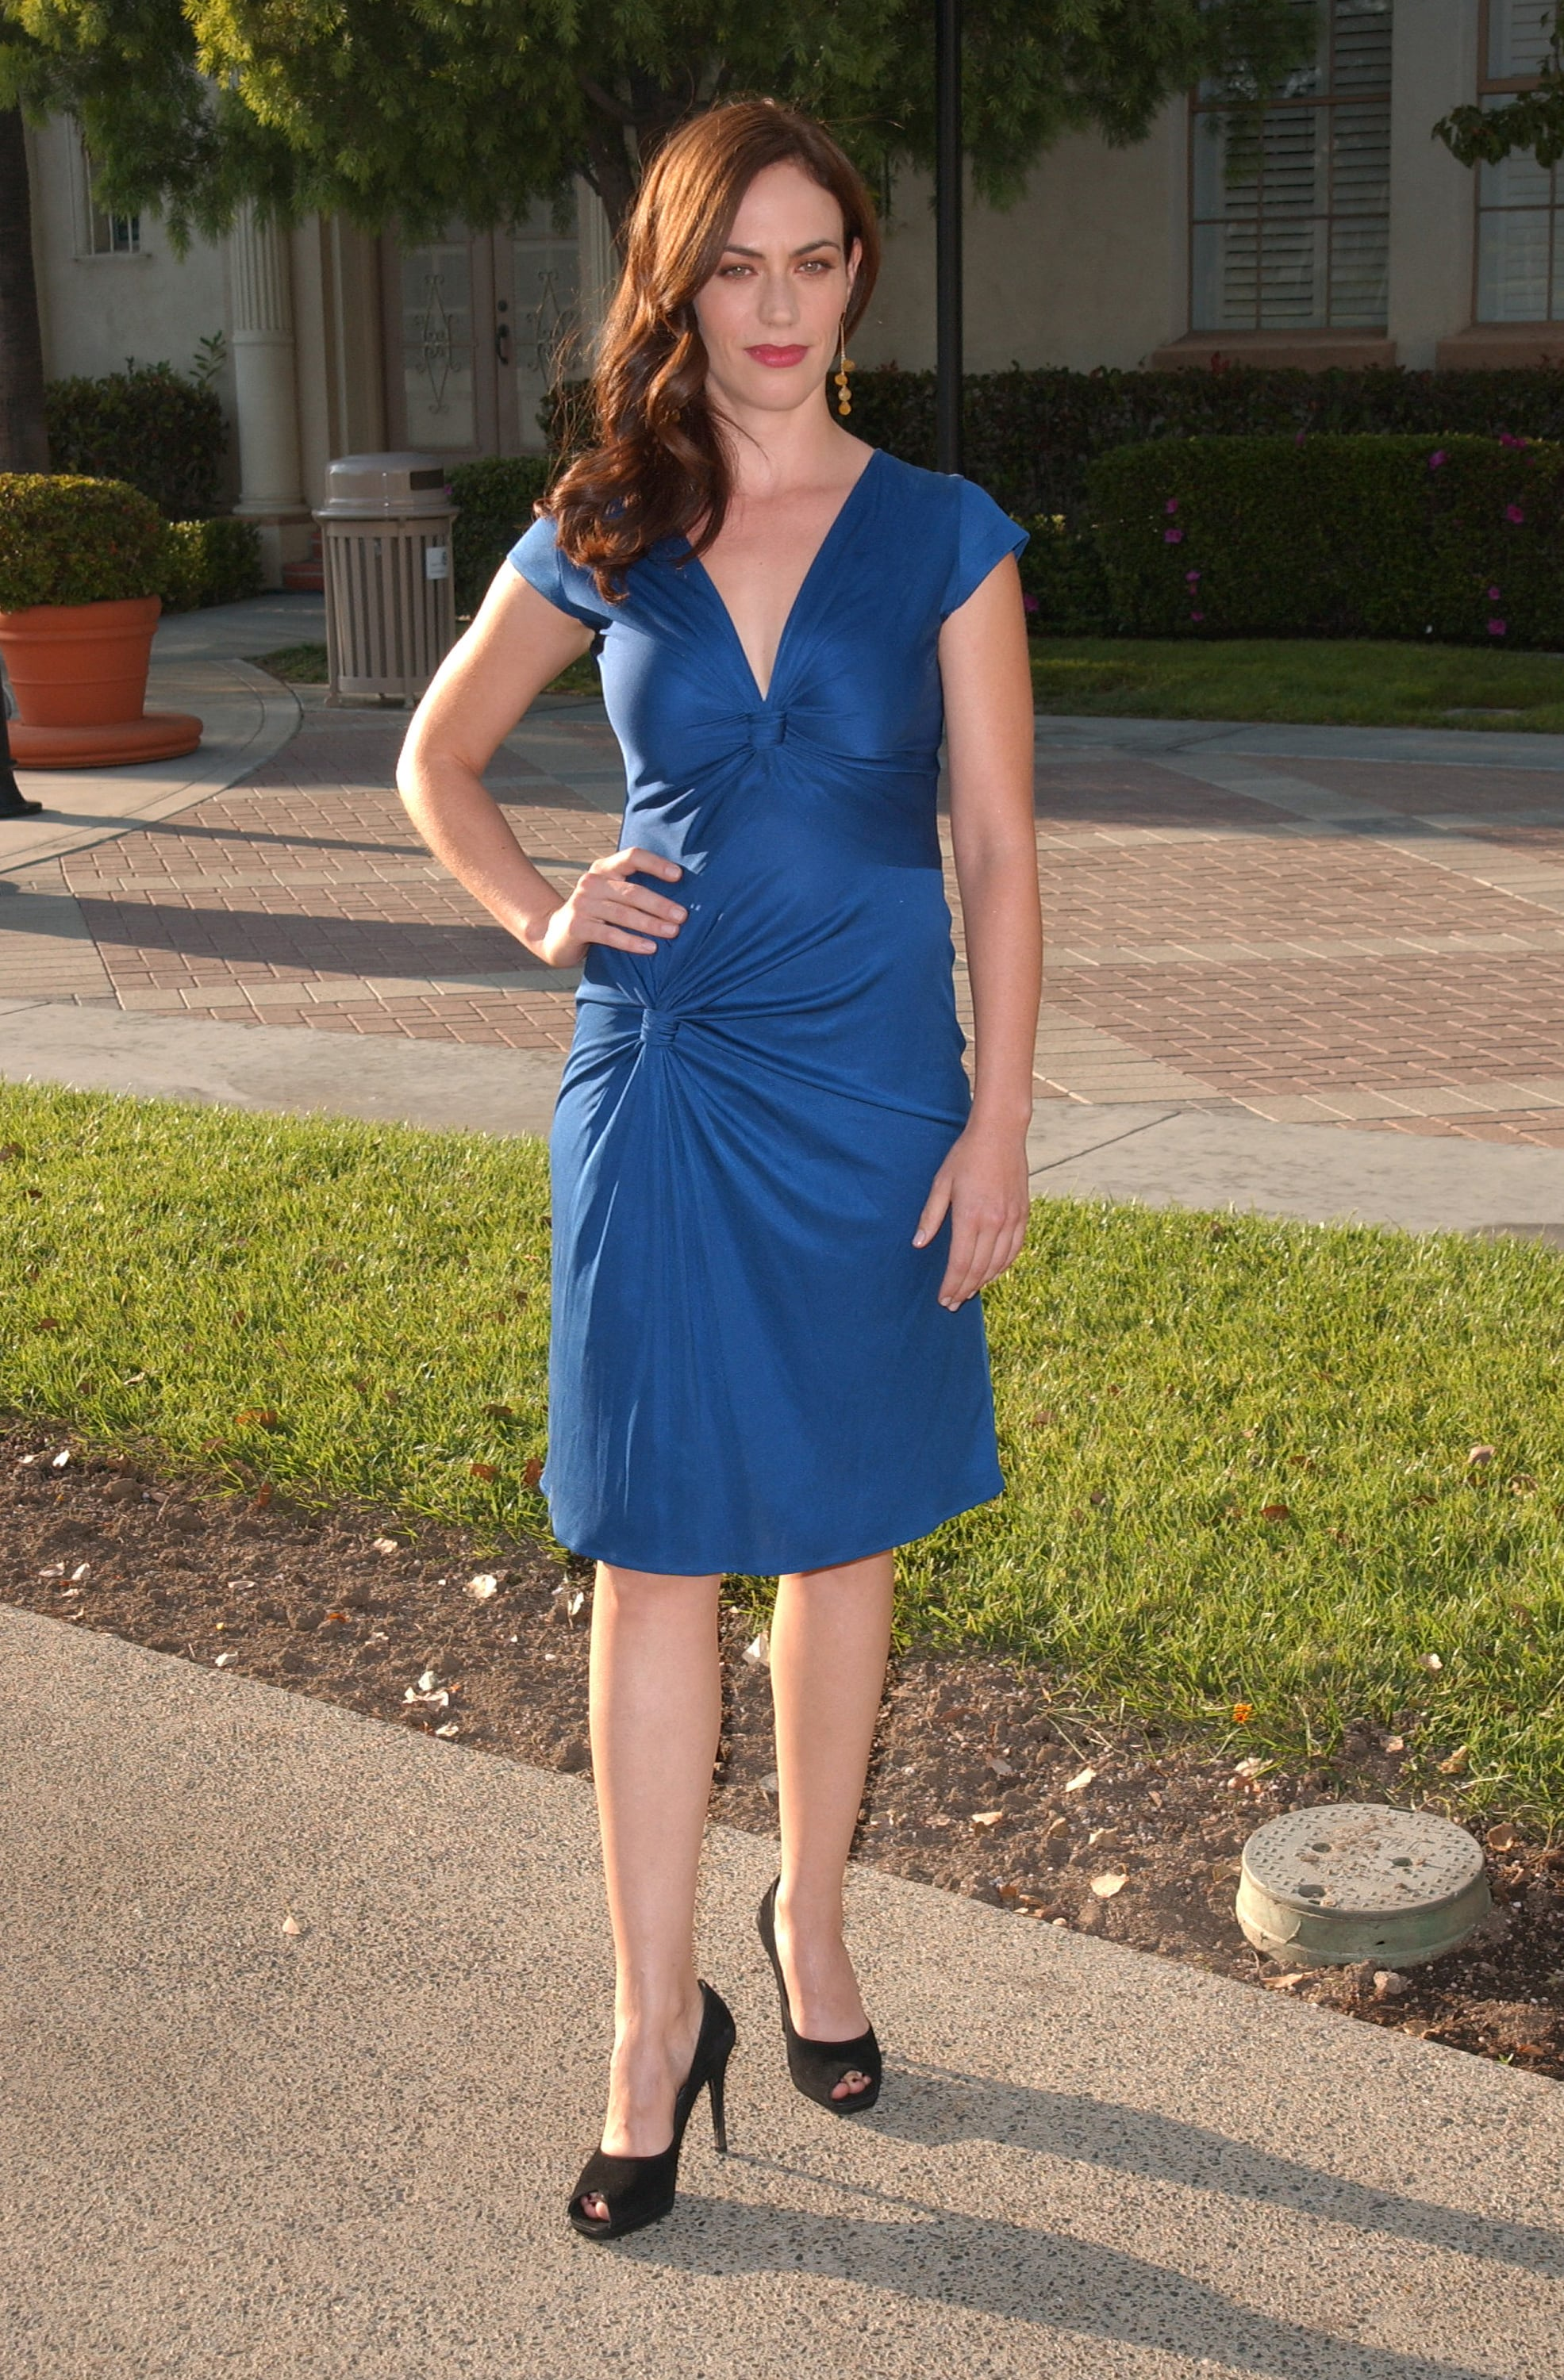 70+ Hot Pictures Of Maggie Siff Are Heaven On Earth | Best